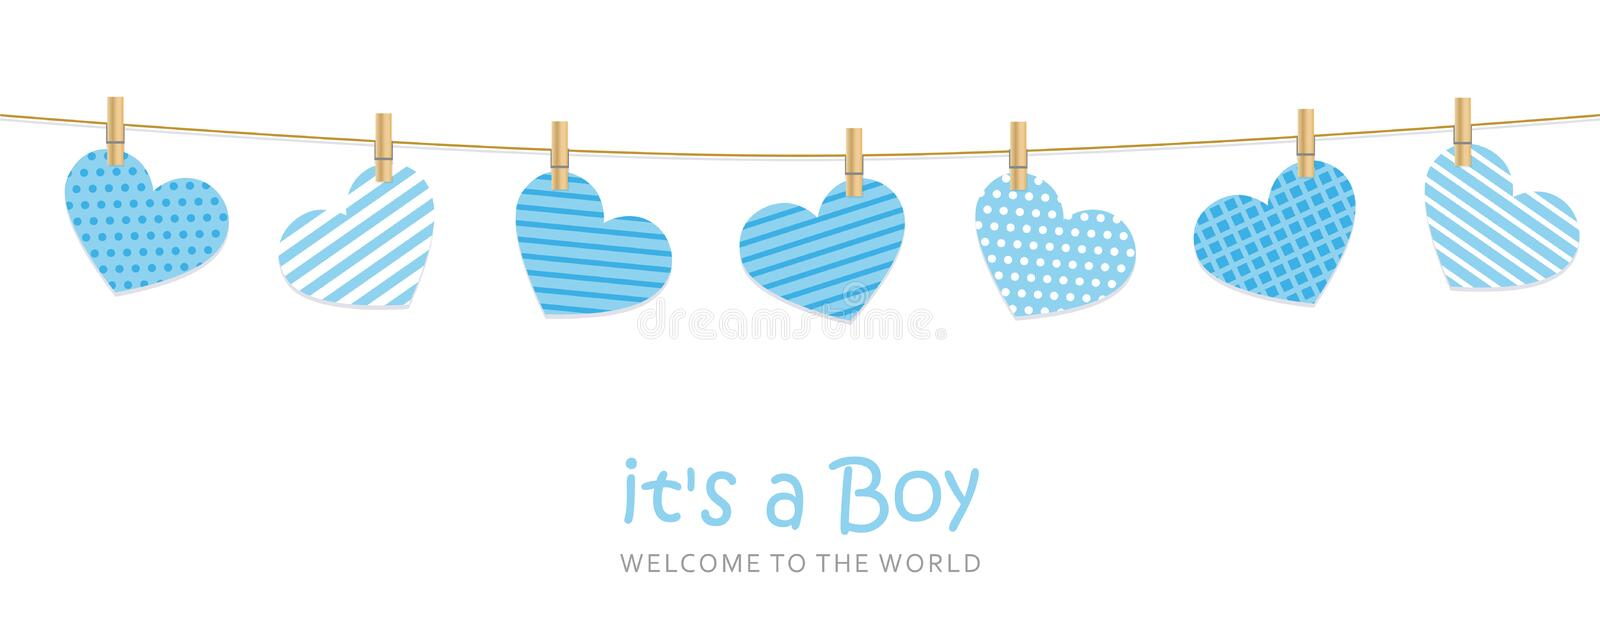 Its a boy welcome greeting card for childbirth with hanging hearts. Vector illustration EPS10 vector illustration